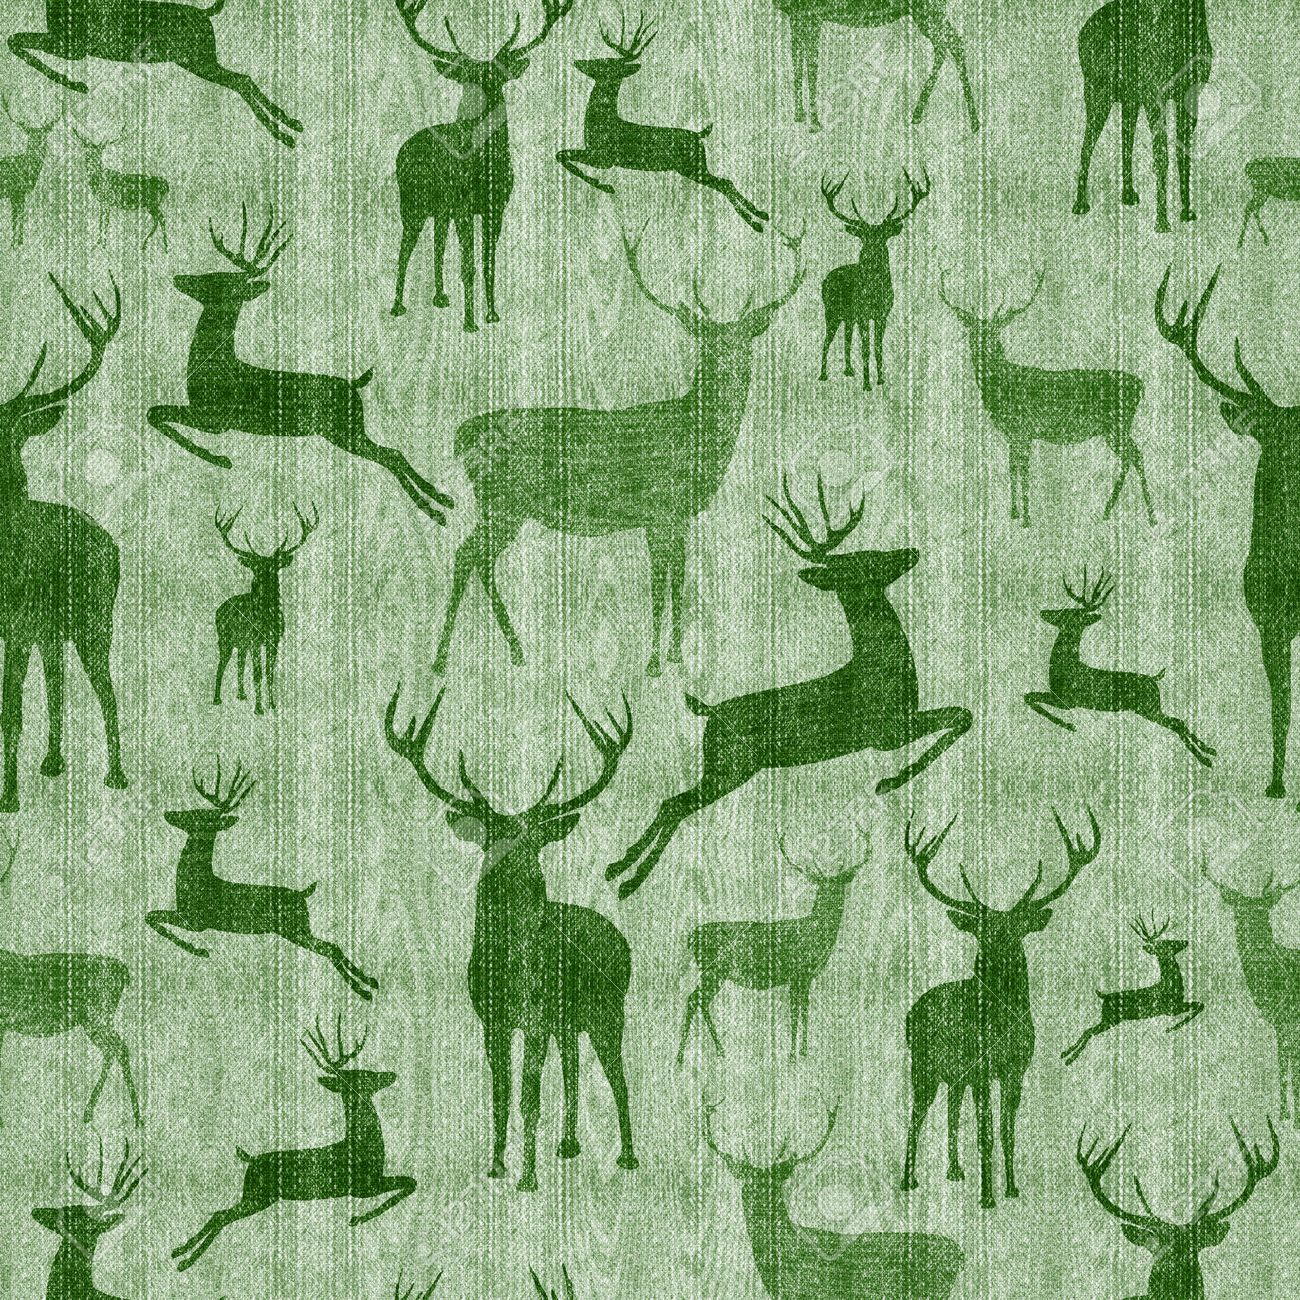 Reindeer Seamless Pattern Vintage Hipster Green Texture Background Ideal For Christmas Season Stock Photo